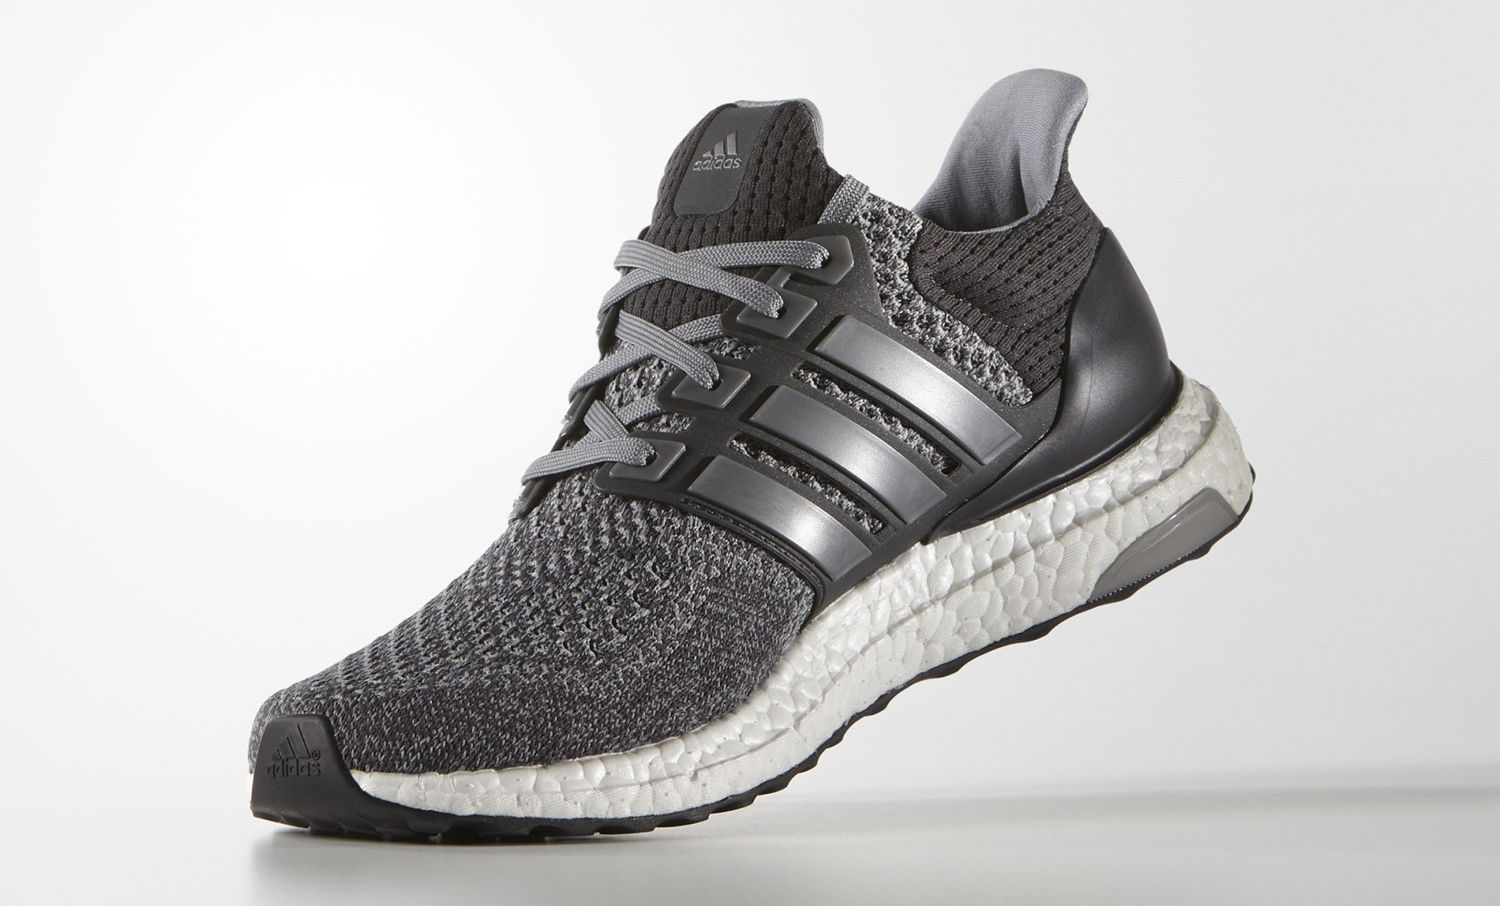 #sneakers #news The adidas Ultra Boost 3.0 Gets A Tonal Indigo Colorway  With Just a Touch of Neon | What's Crackin ?? | Pinterest | Adidas, Neon  and Dark ...